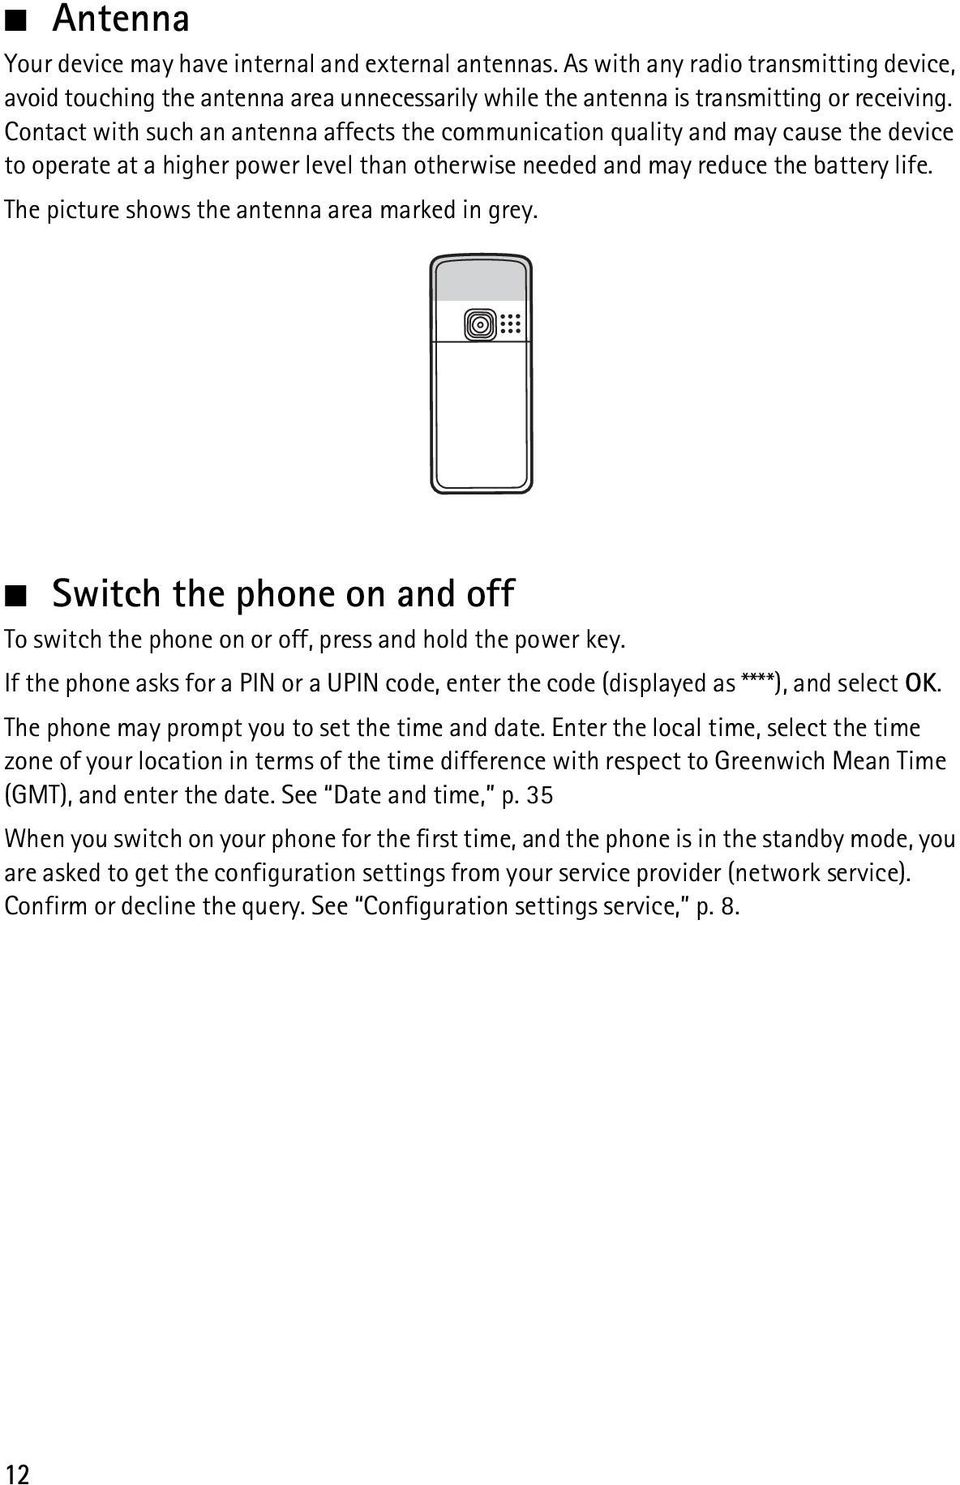 The picture shows the antenna area marked in grey. Switch the phone on and off To switch the phone on or off, press and hold the power key.